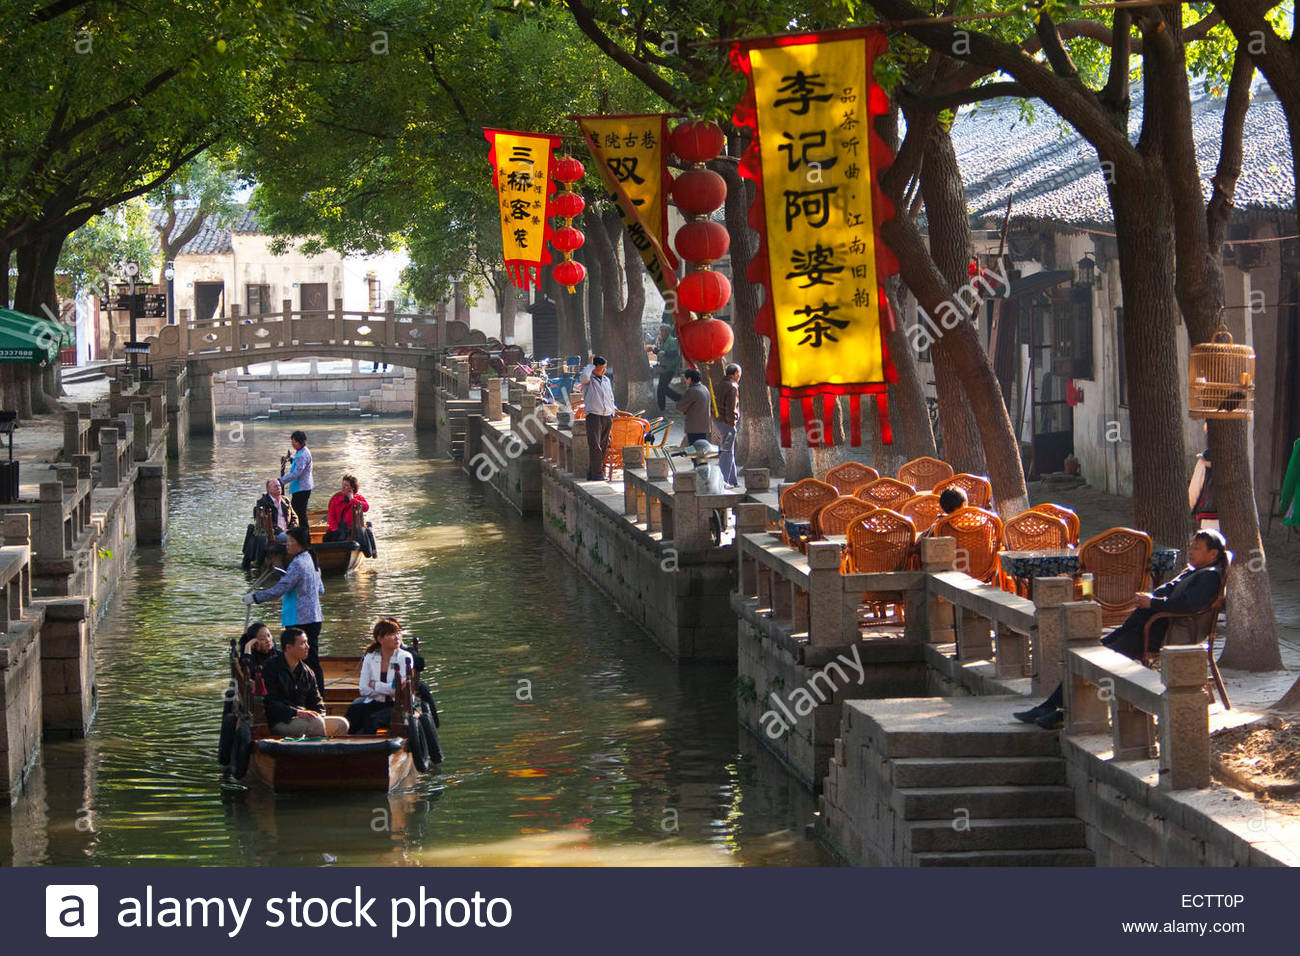 Shanghai, Tourists travelling on the canals of Tongli. - Stock Image